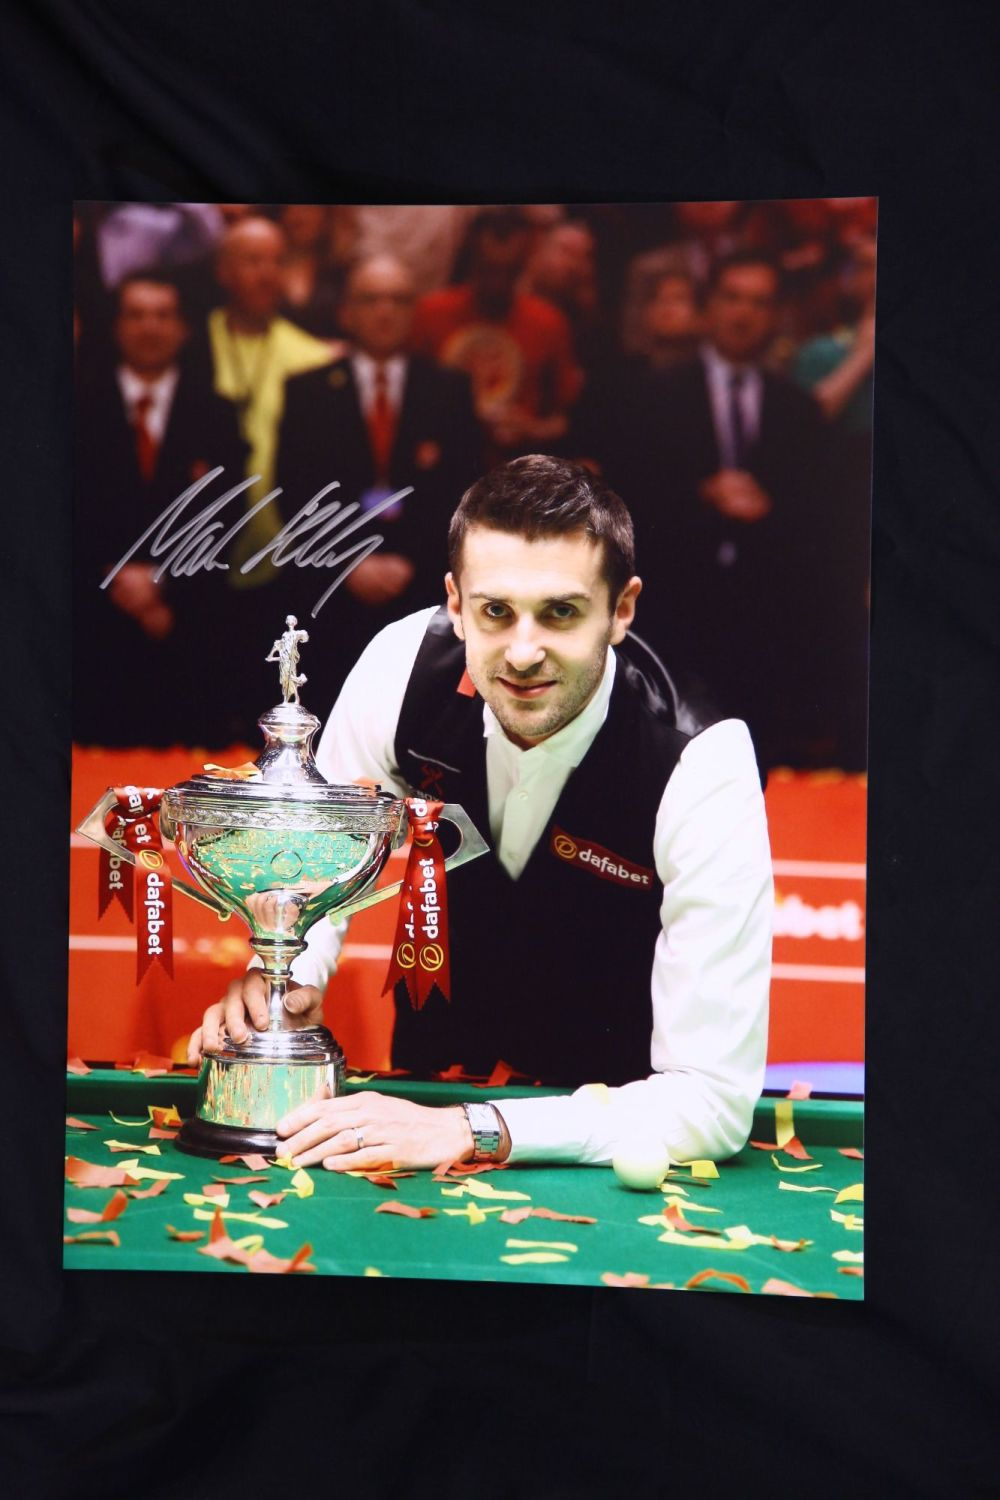 Mark Selby World Champion Signed 12x16 Snooker Photo A